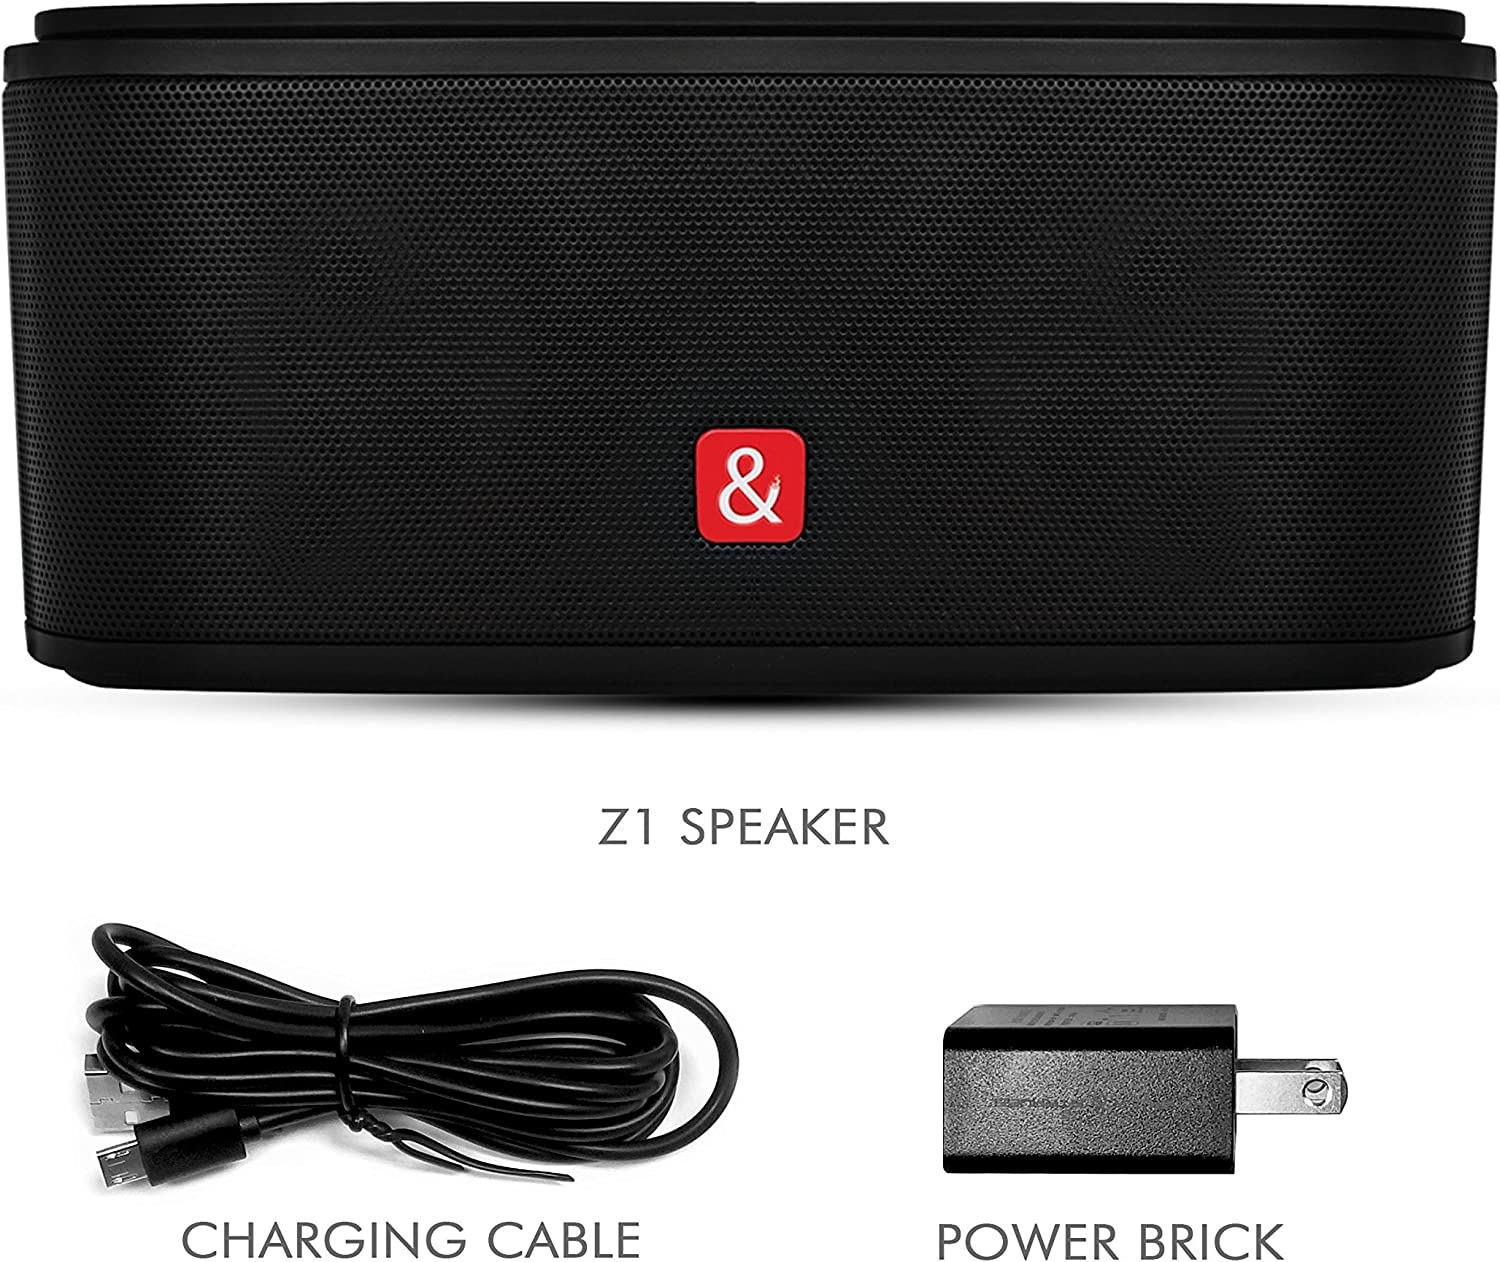 Kempler /& Strauss Z1 Wireless Bluetooth Speaker TF Card HD Sound Ultra Long Play Time Battery iPhone//Android Compatible for Home or Travel Line-in Mega Bass Designed in Germany